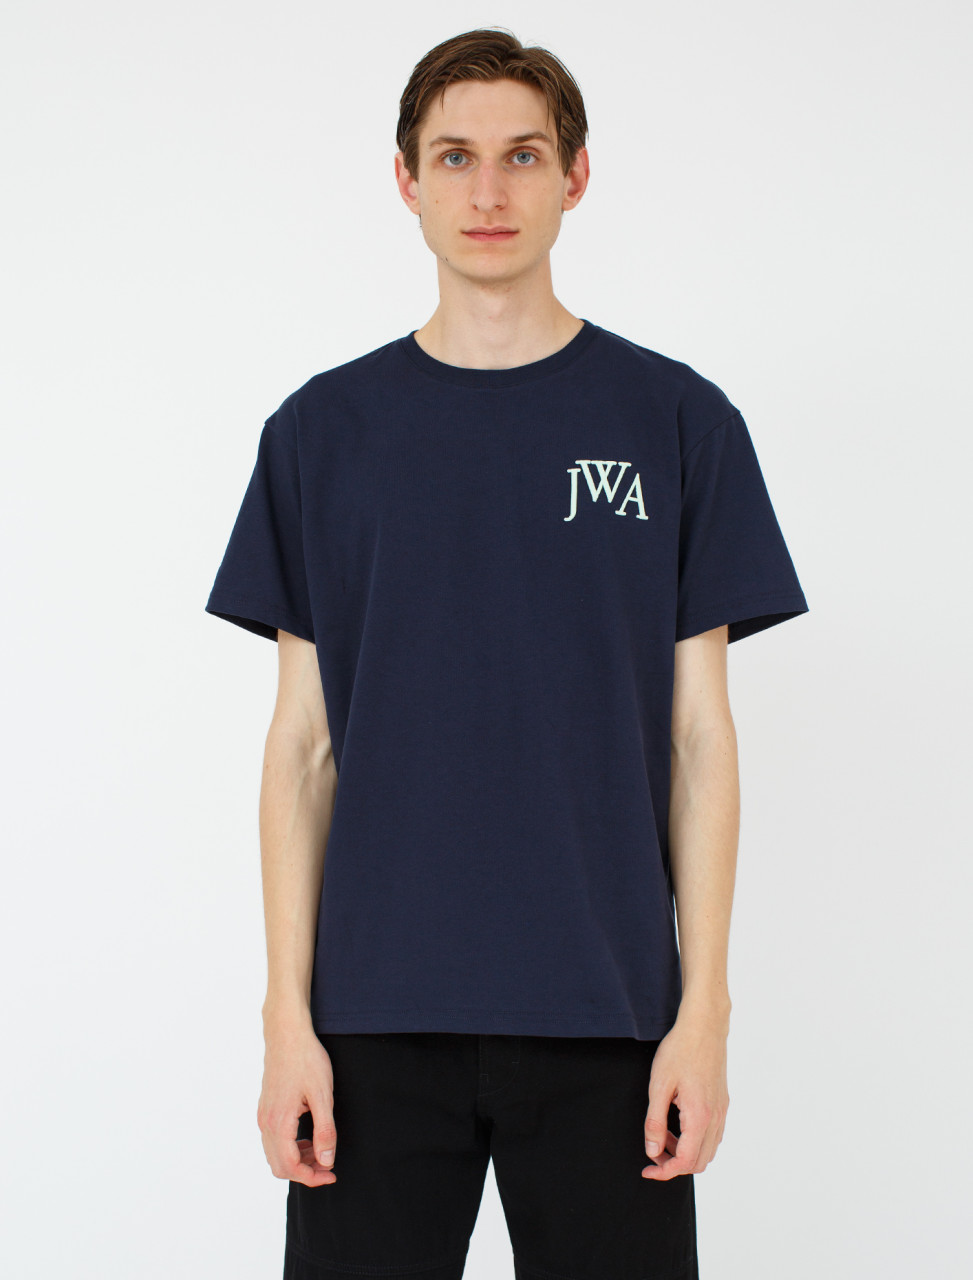 JWA Embroidery Logo T-Shirt